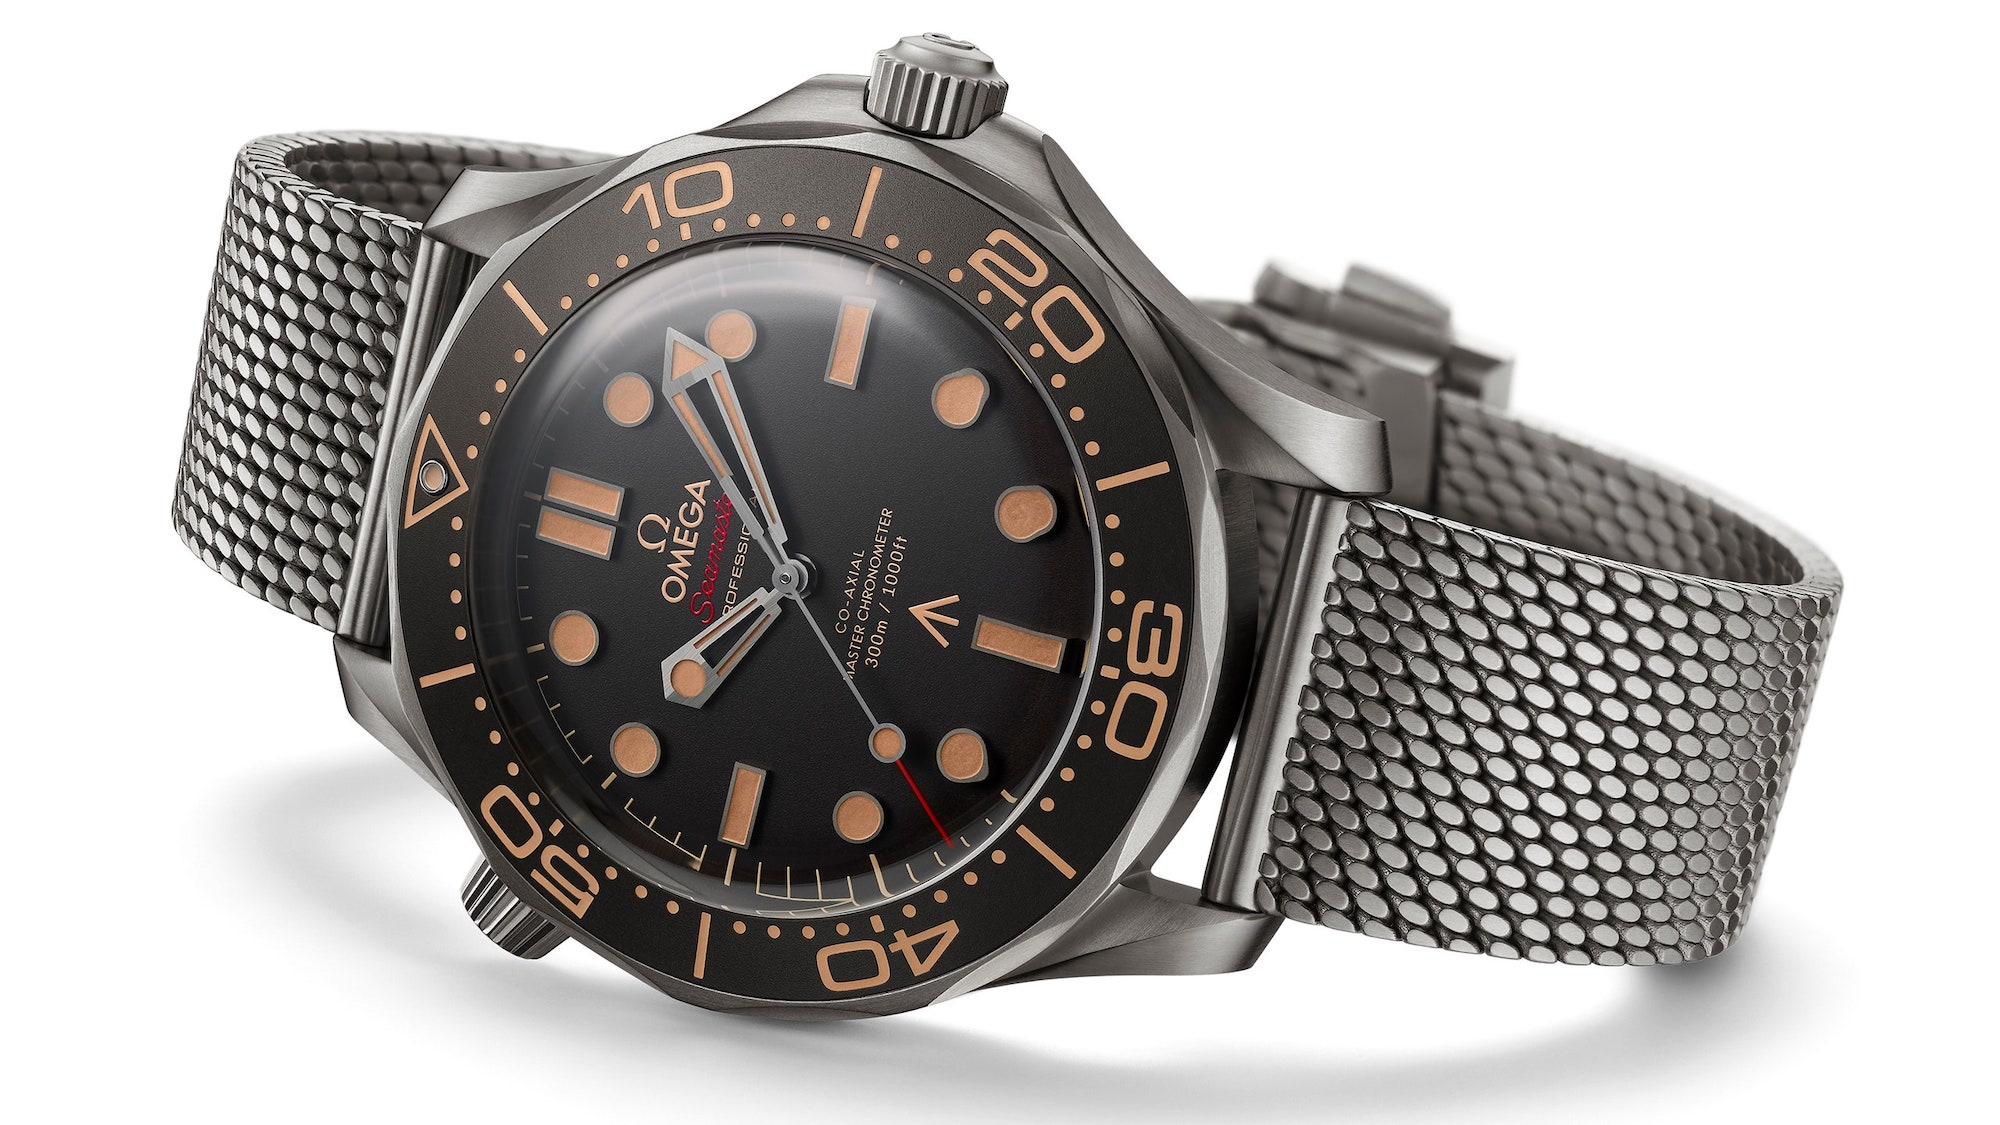 Omega Seamaster Diver 300M Co-Axial Master Chronometer 42 mm 210.90.42.20.01.001